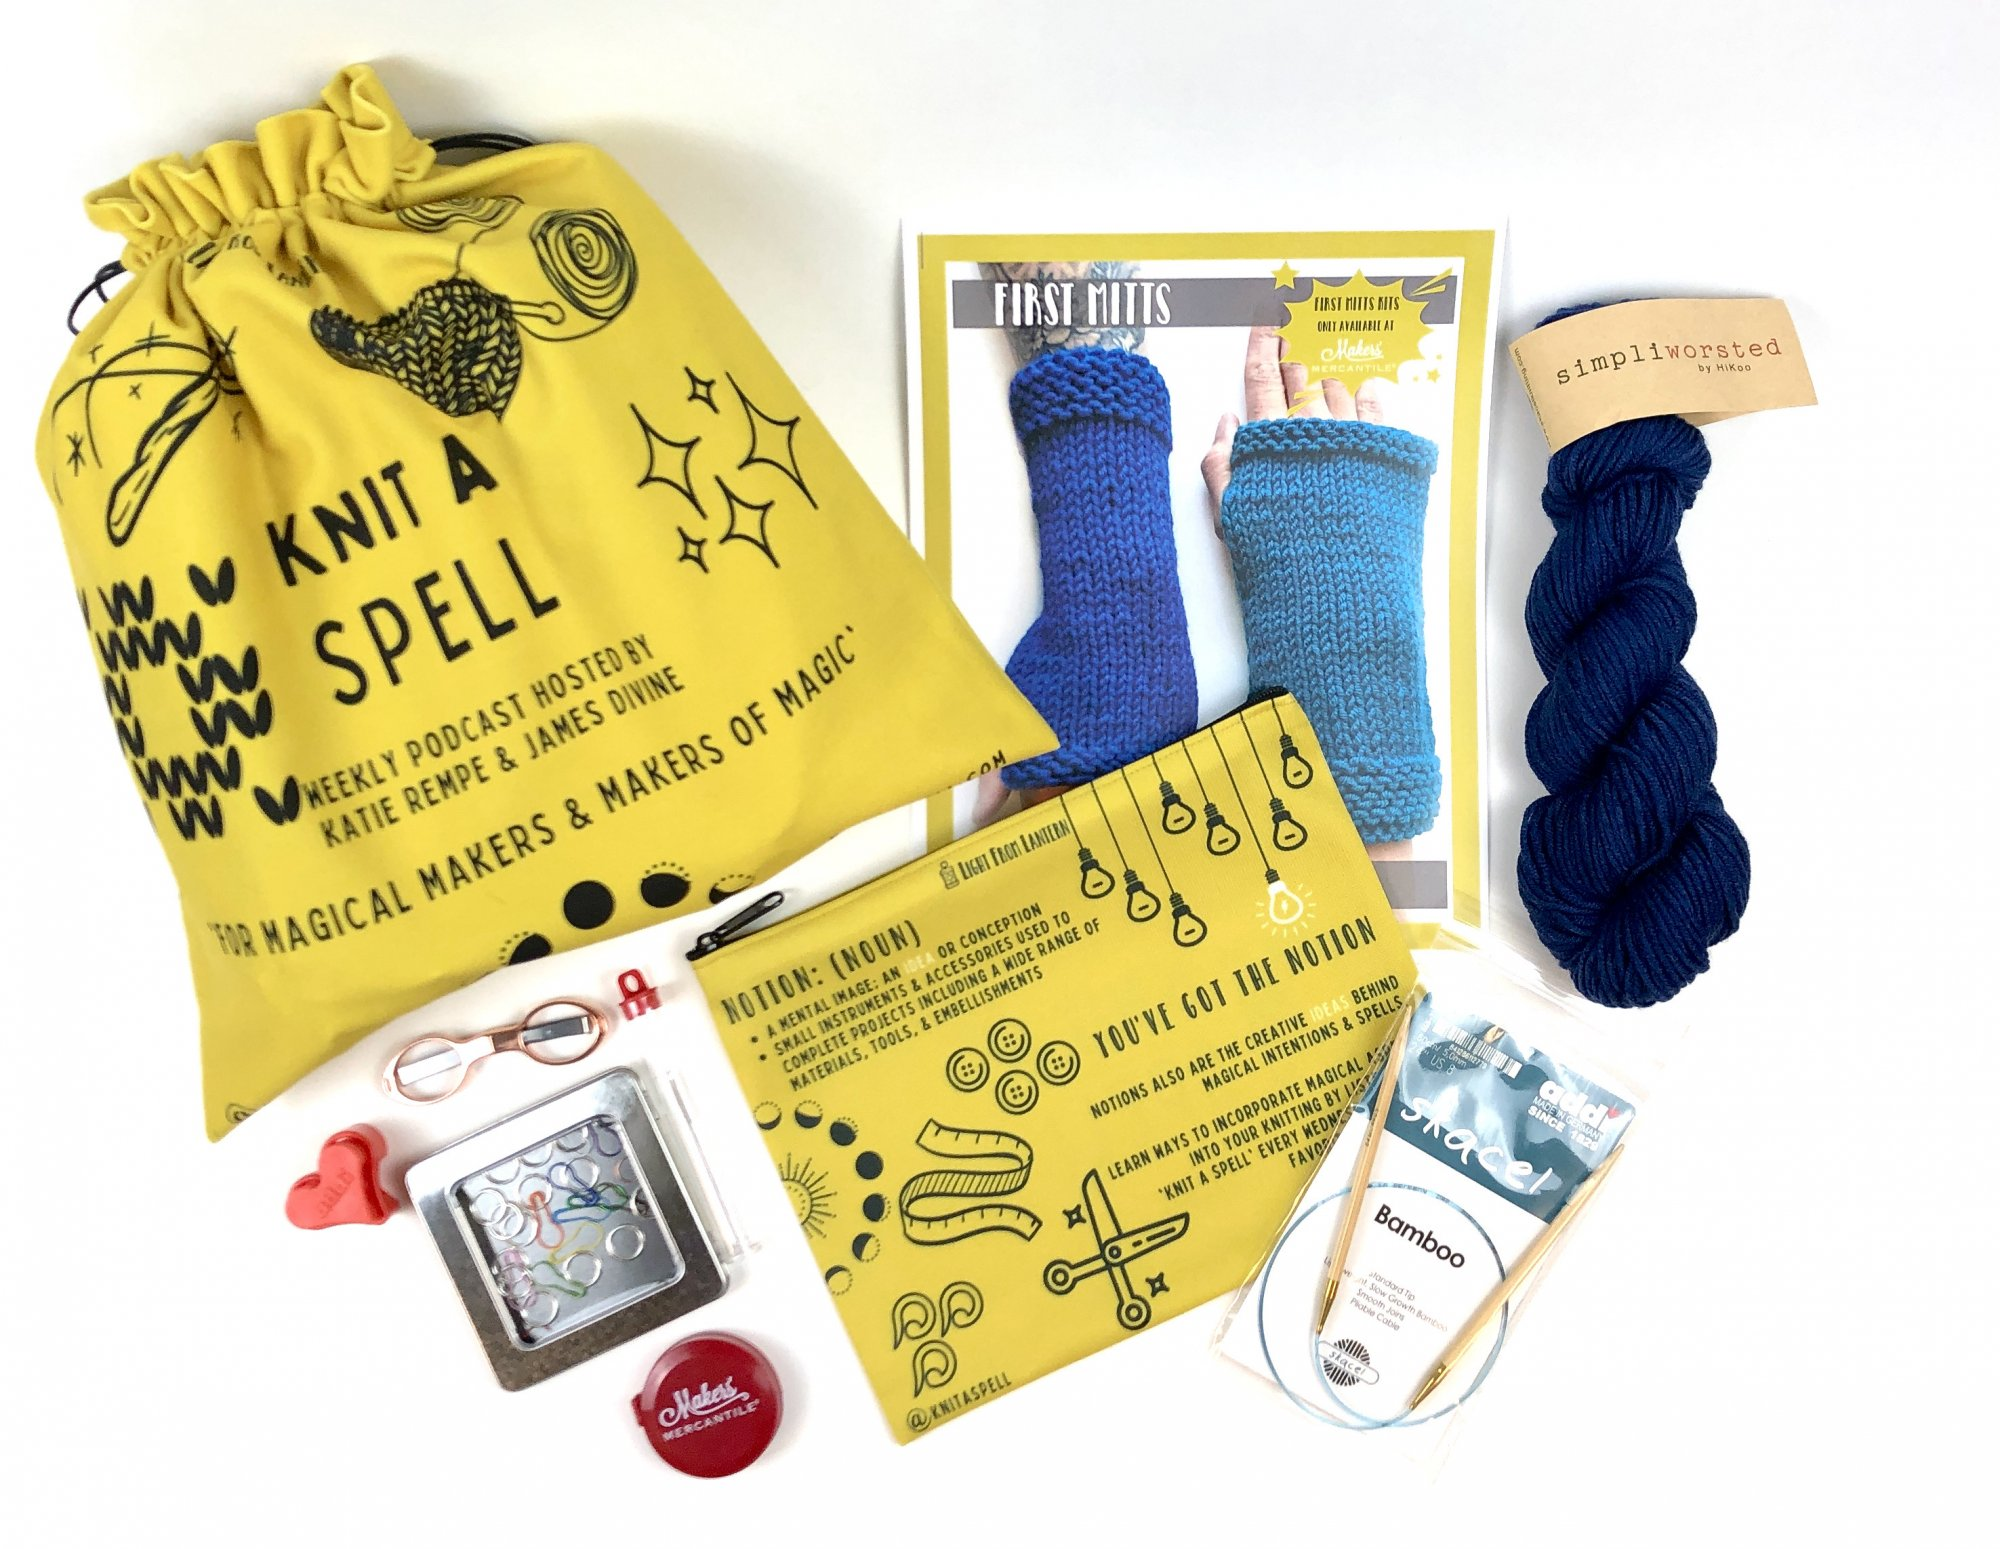 Knit A Spell First Mitts Kit